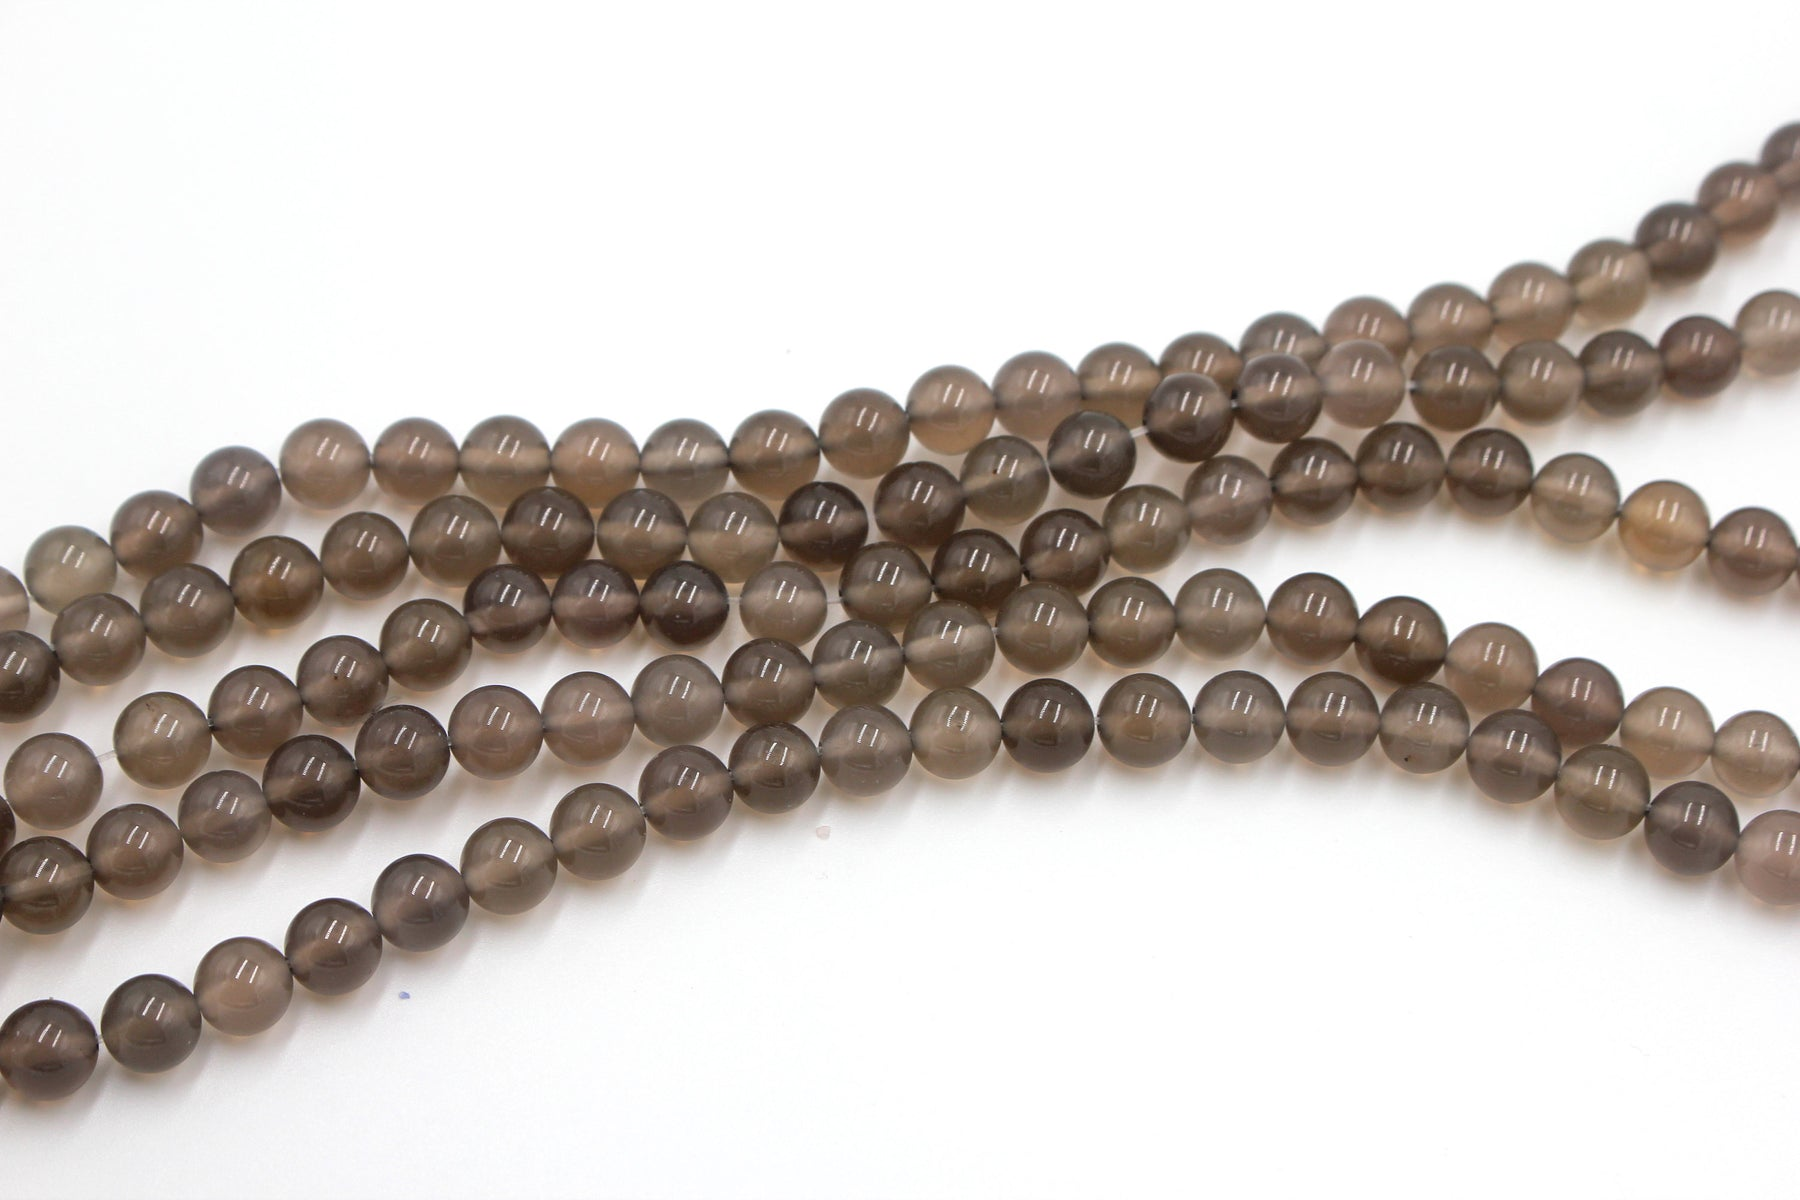 8mm gray agate beads